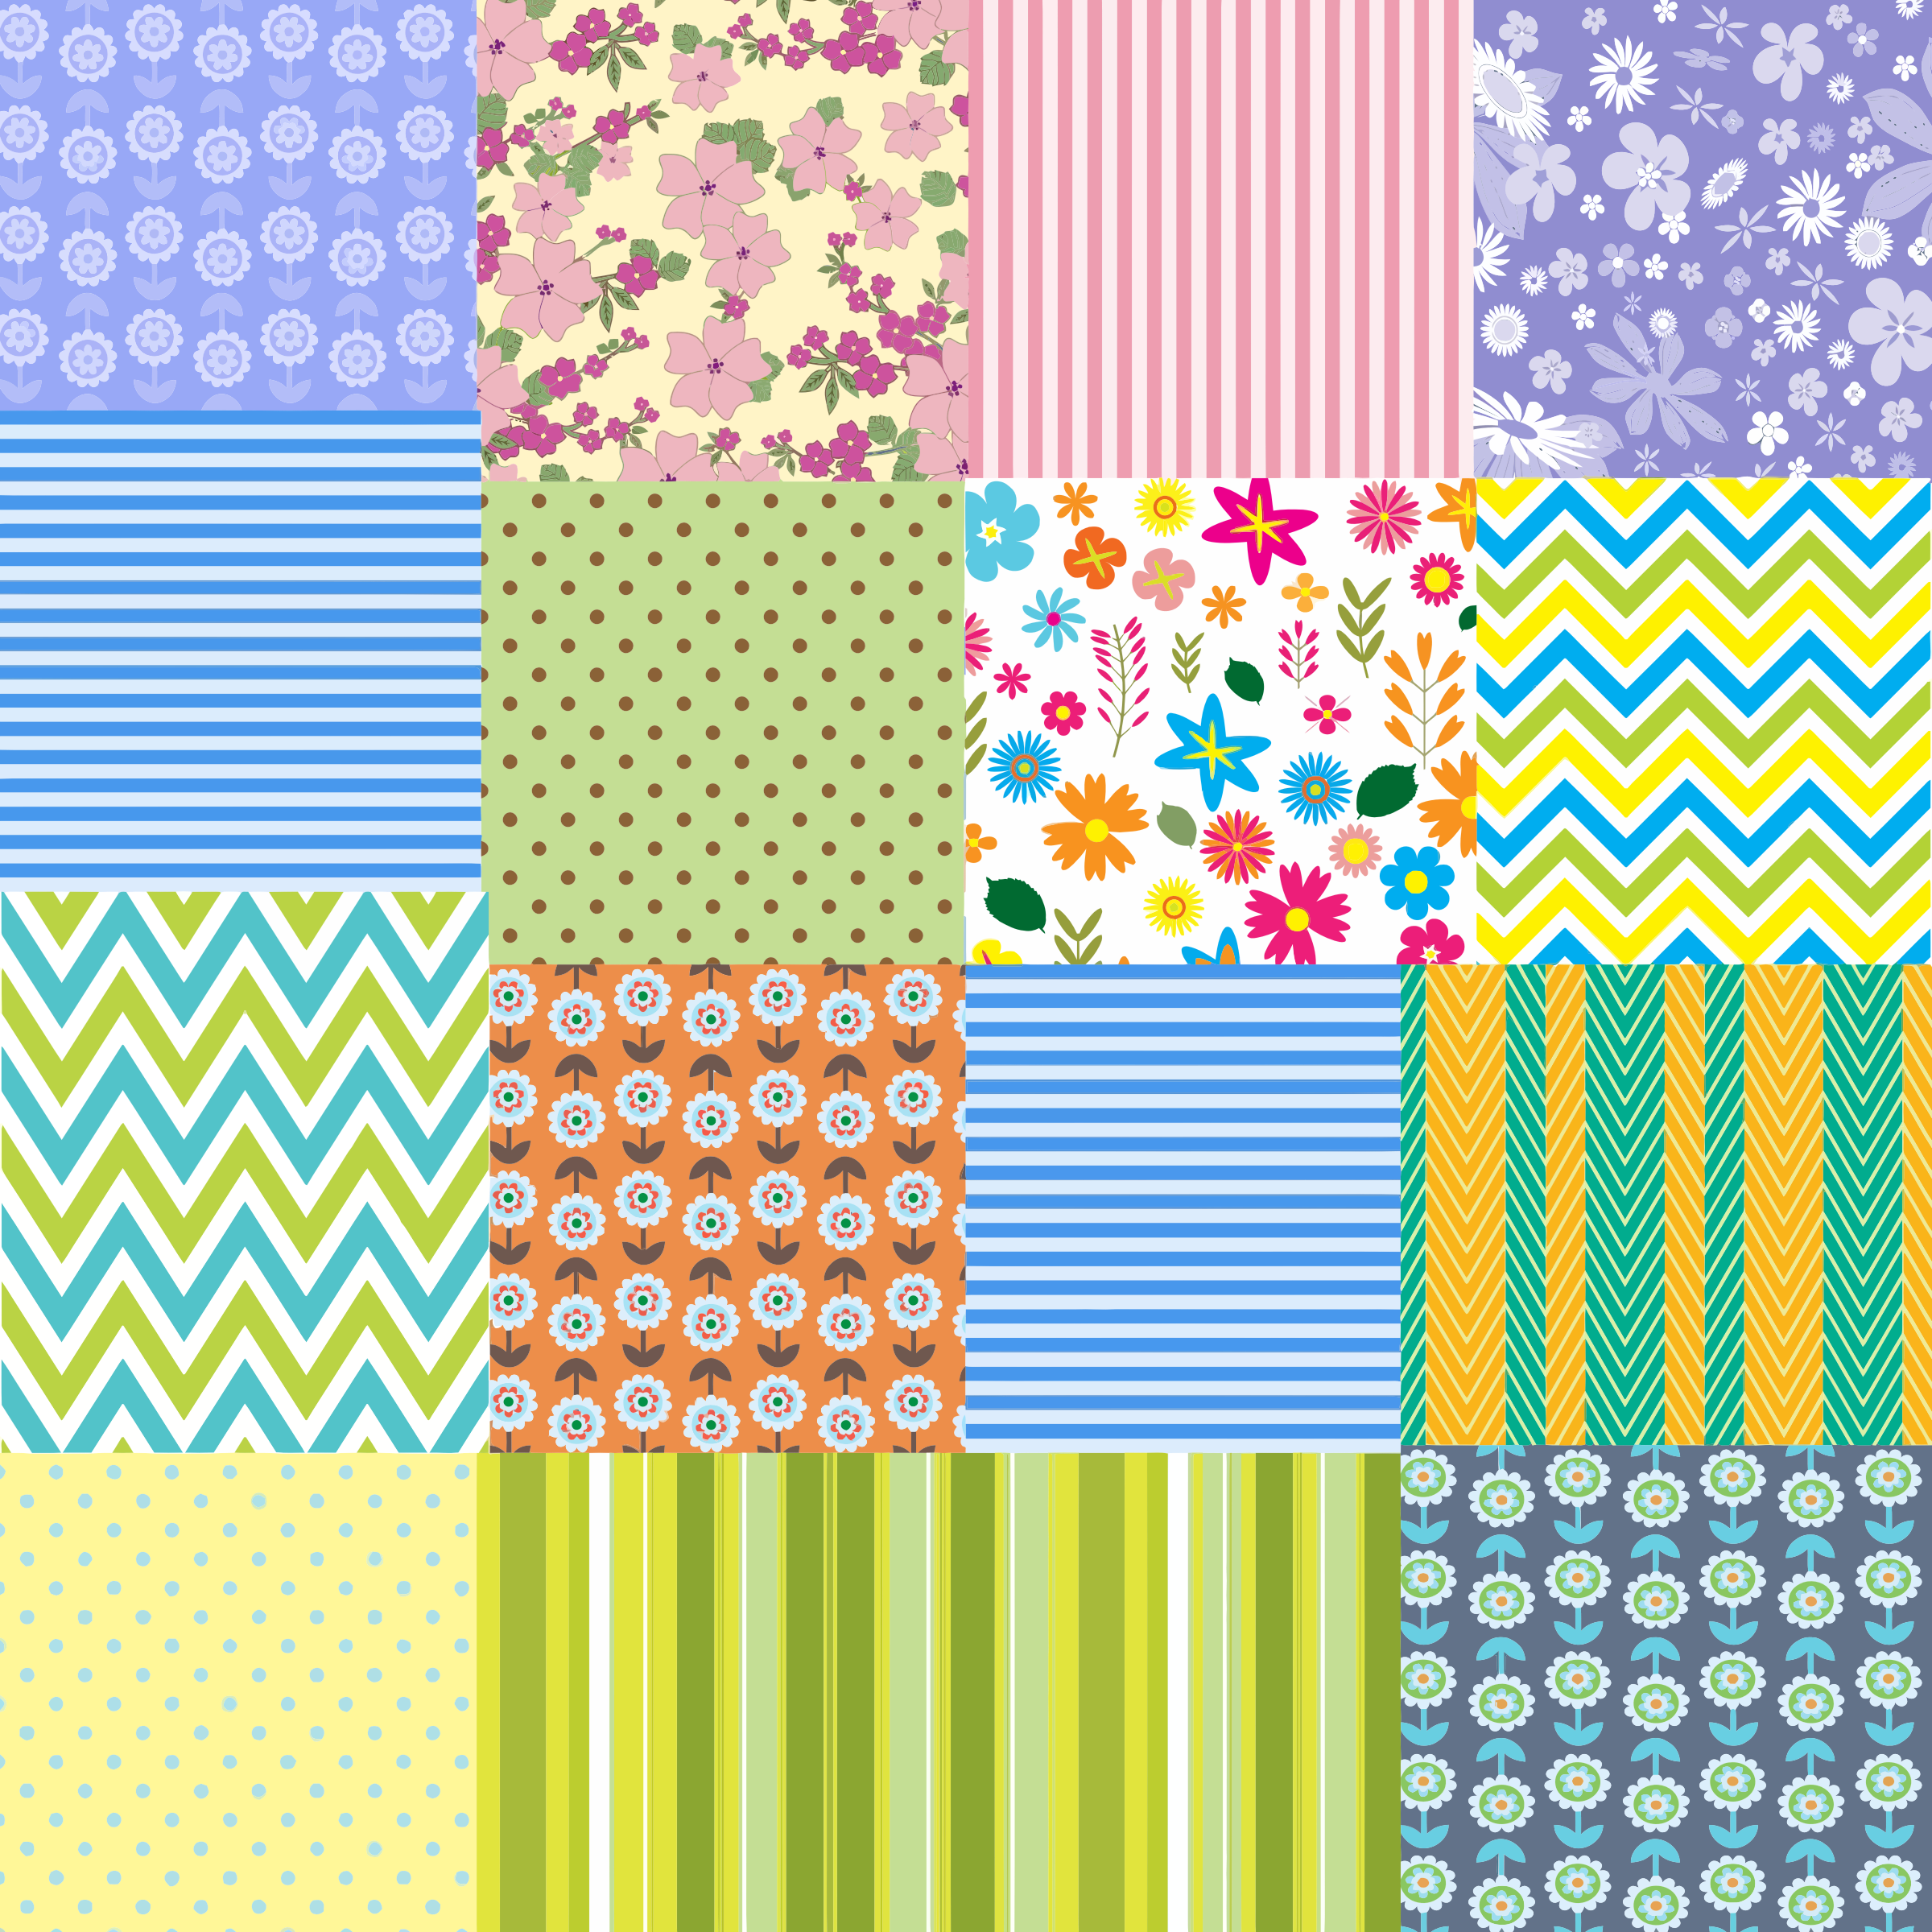 Pattern clipart background pattern Patchwork Pattern Clipart Patchwork Background